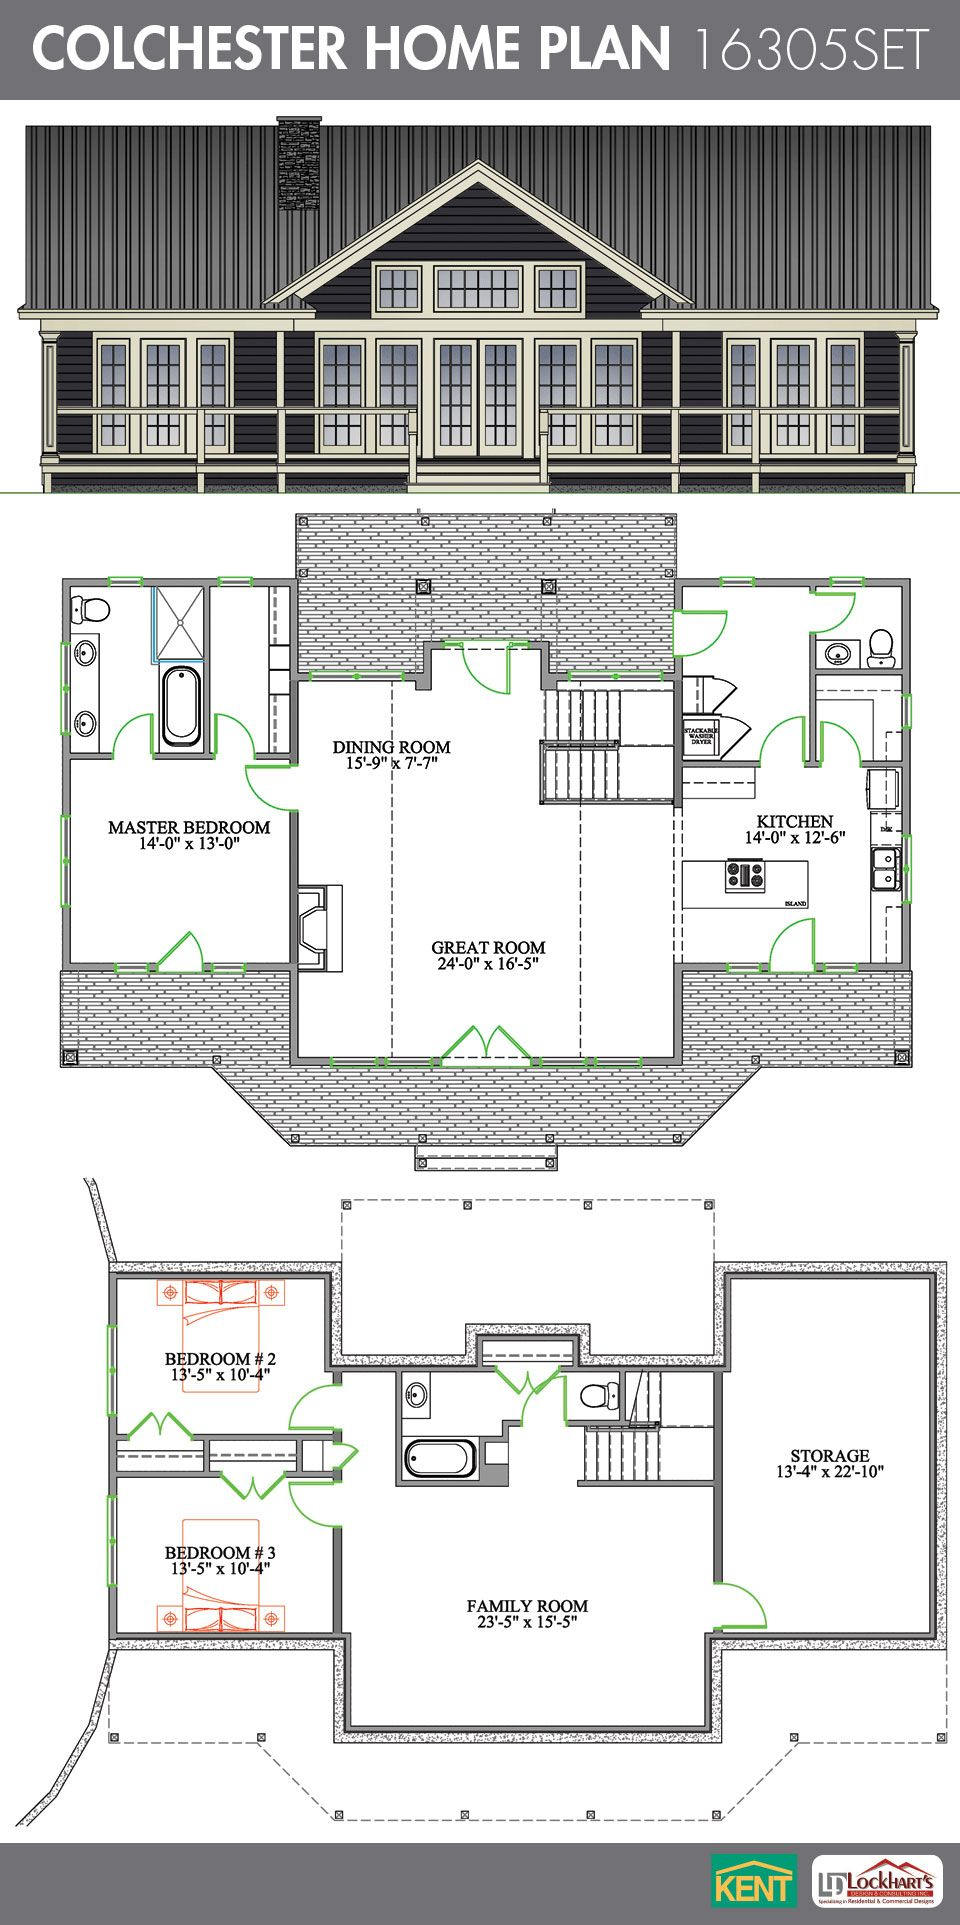 Colchester 3 Bedroom, 2 1/2 Bath Home Plan. Features: Open